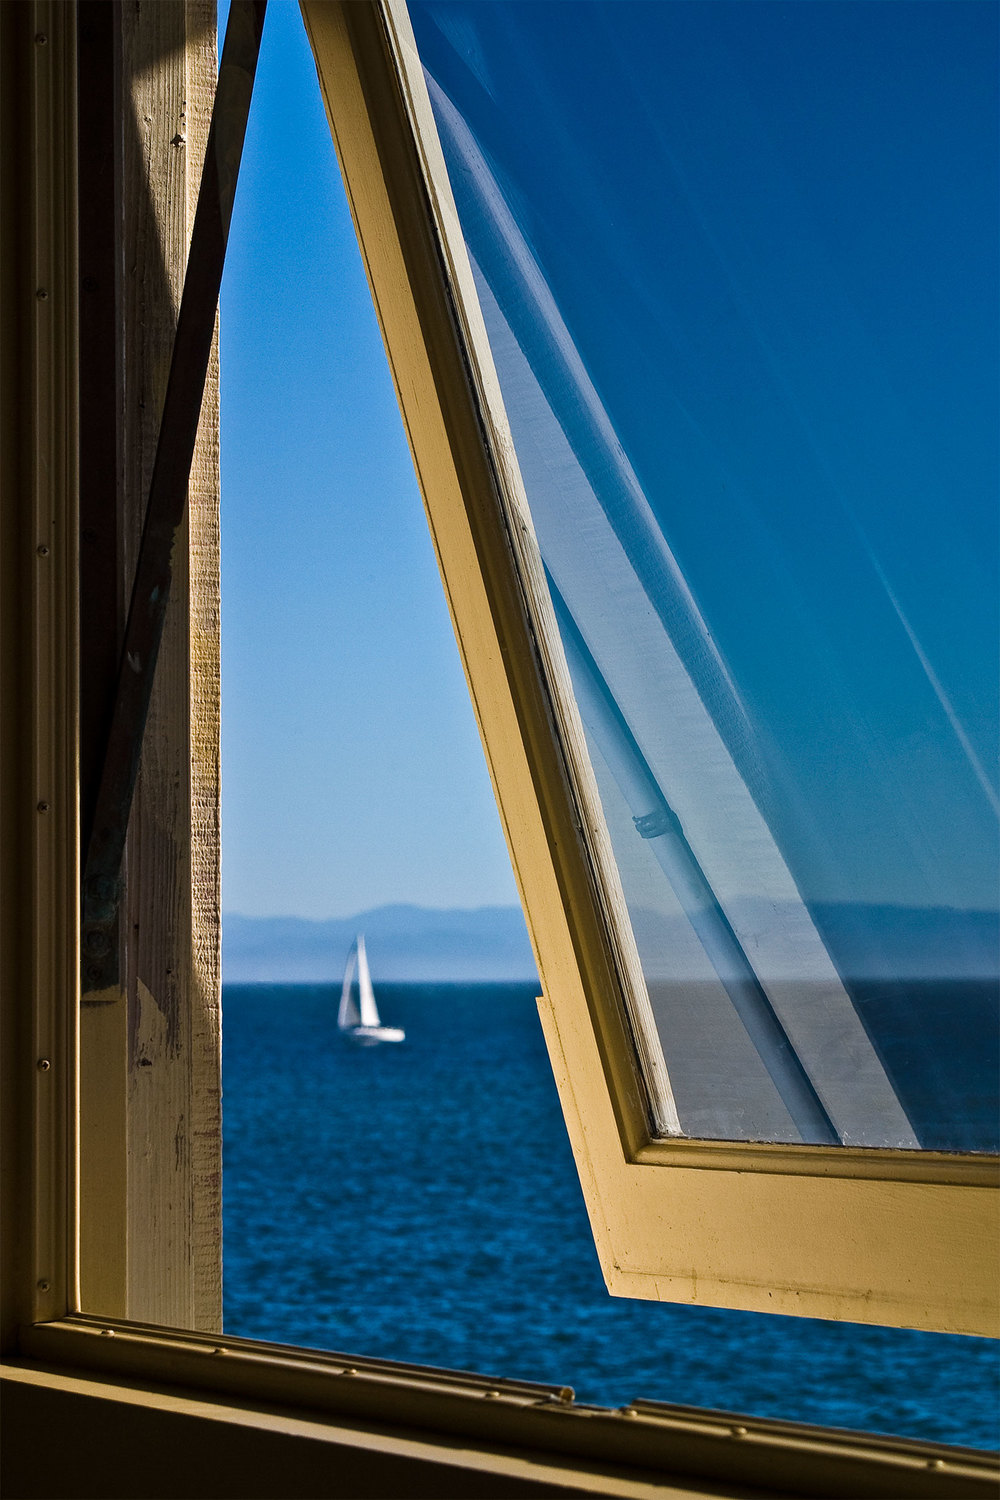 window_on_pier_1500.jpg